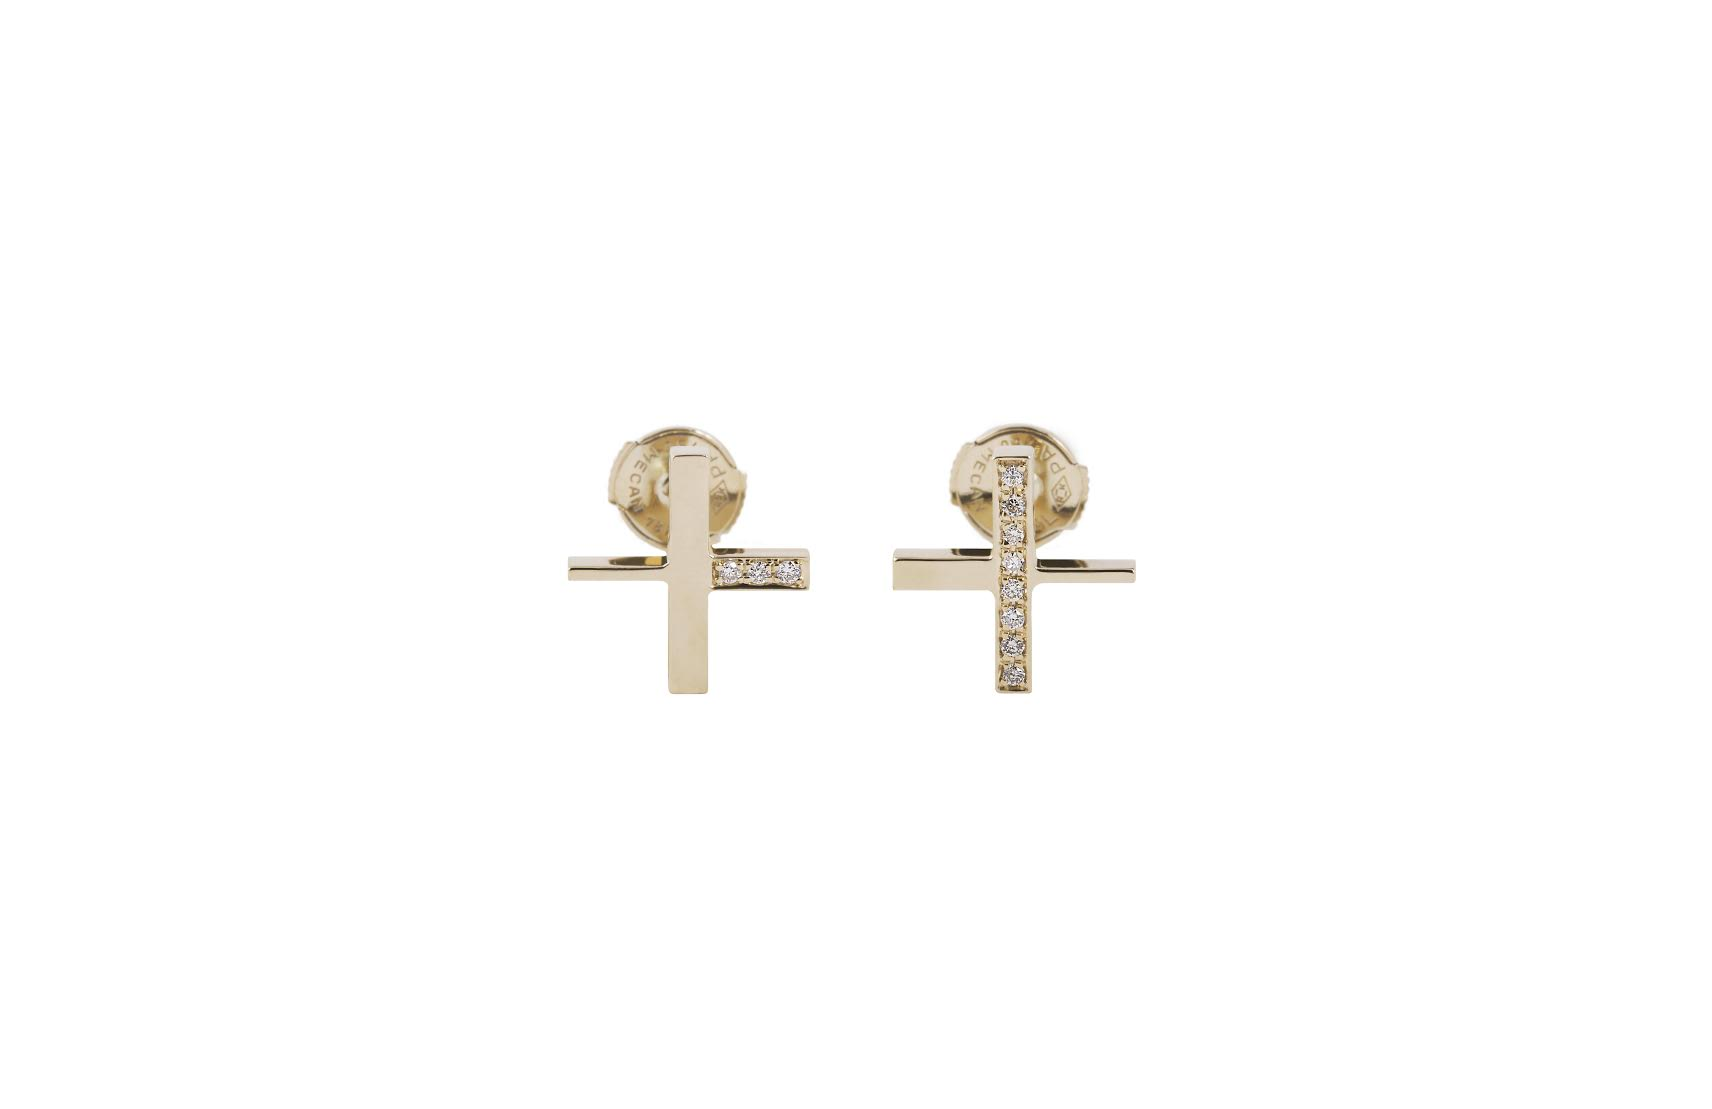 INTERSECTION EARRINGS YELLOW GOLD 18K 11 DIAMONDS